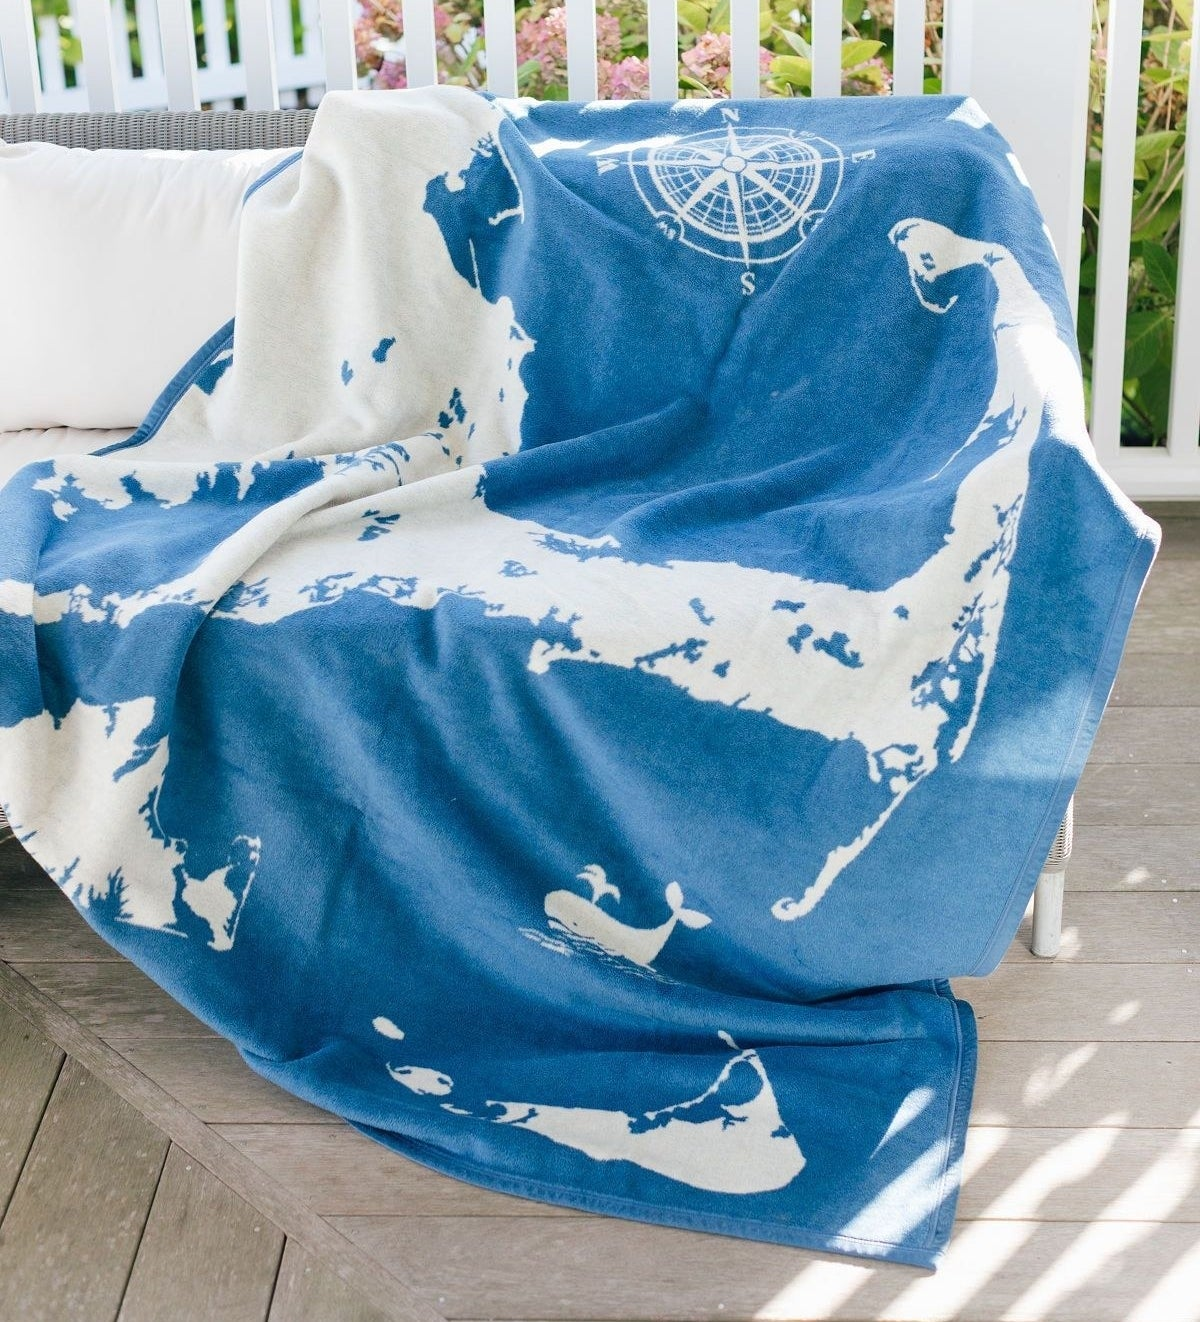 the blue blanket with Cape Cod design